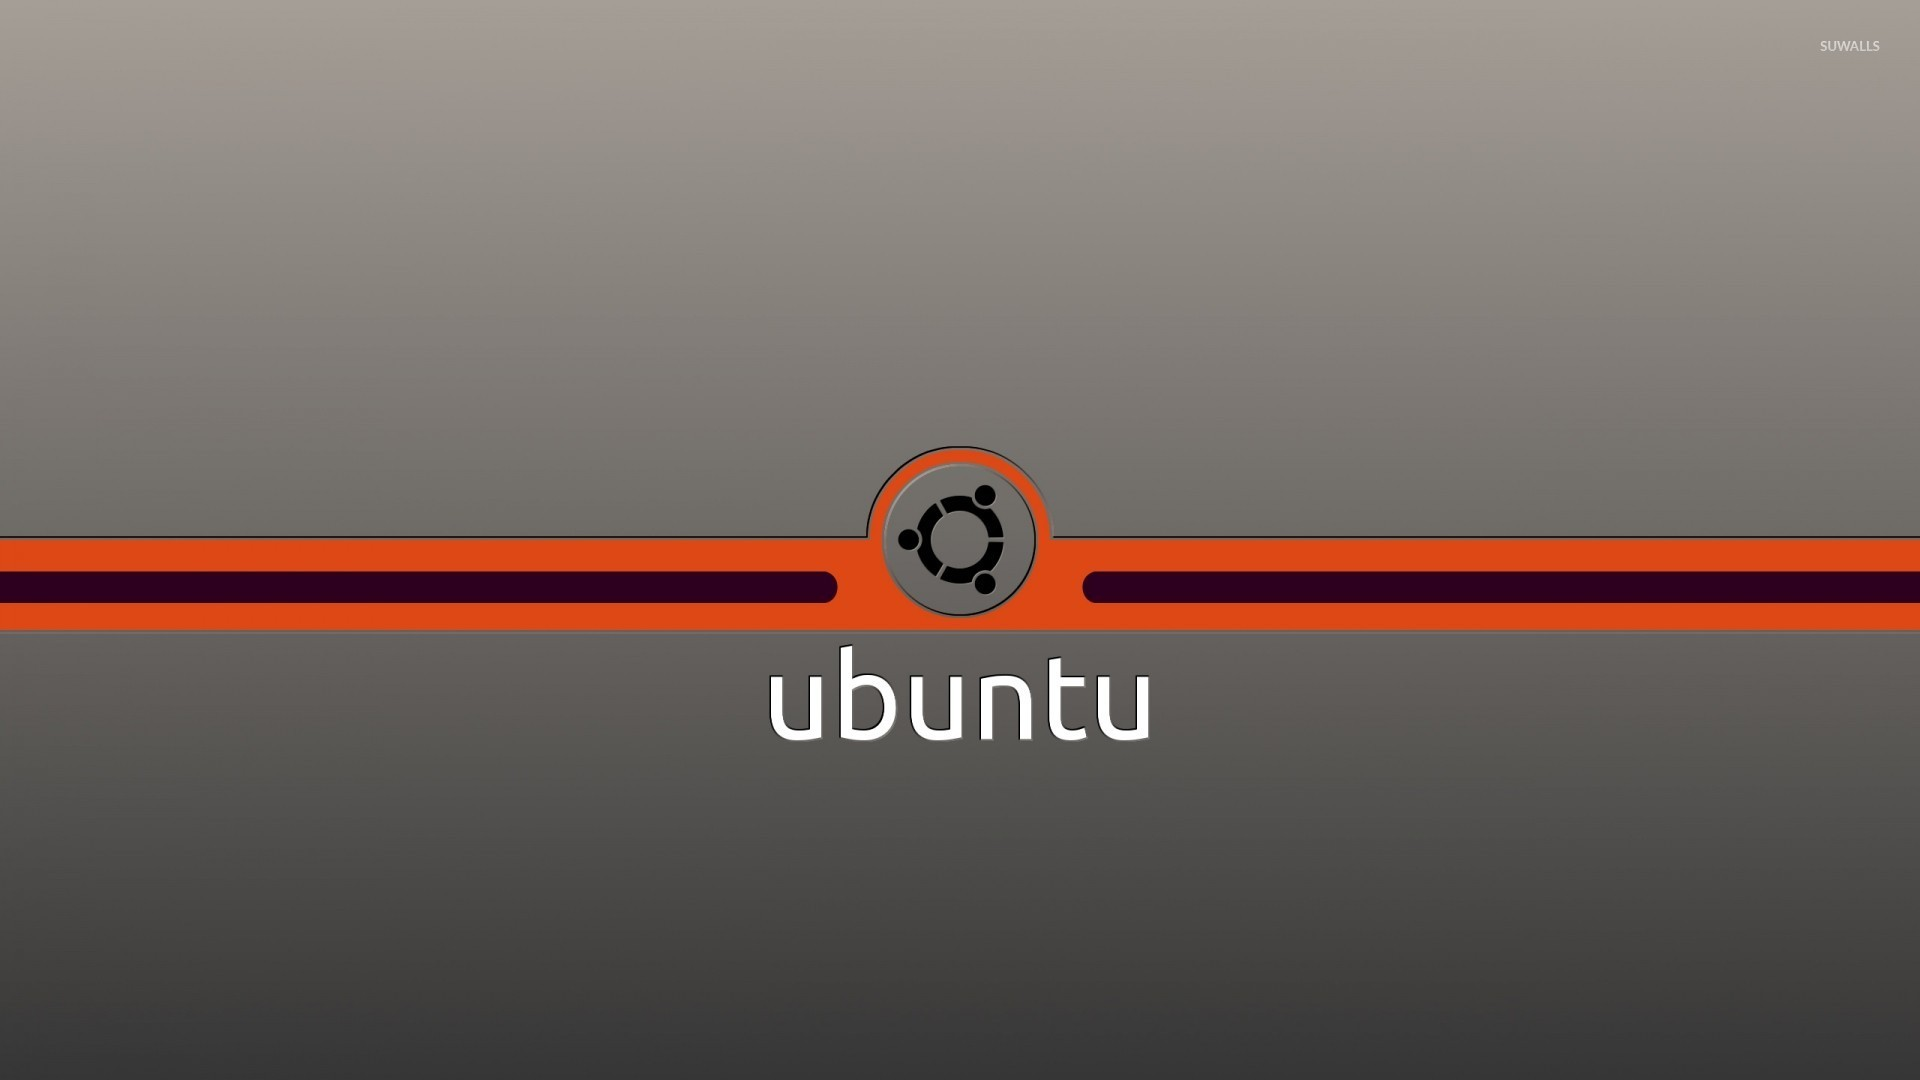 ubuntu terminal live wallpaper In this tip we will see how to change the desktop background image (wallpaper) from the command line under ubuntu or any other system having the.